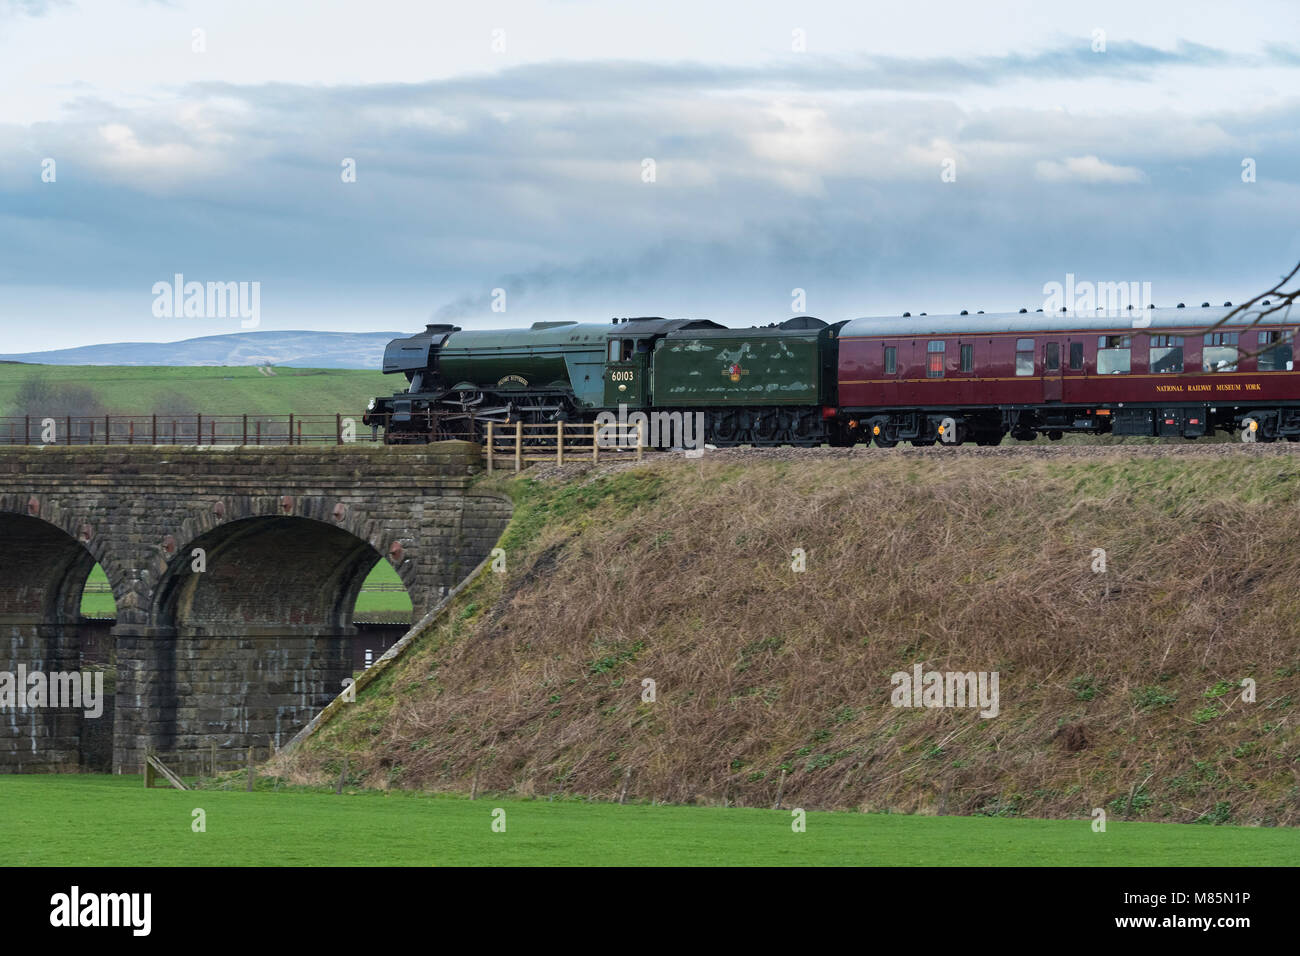 Puffing steam cloud, iconic locomotive LNER class A3 60103 Flying Scotsman about to cross stone bridge - Ribblehead, - Stock Image